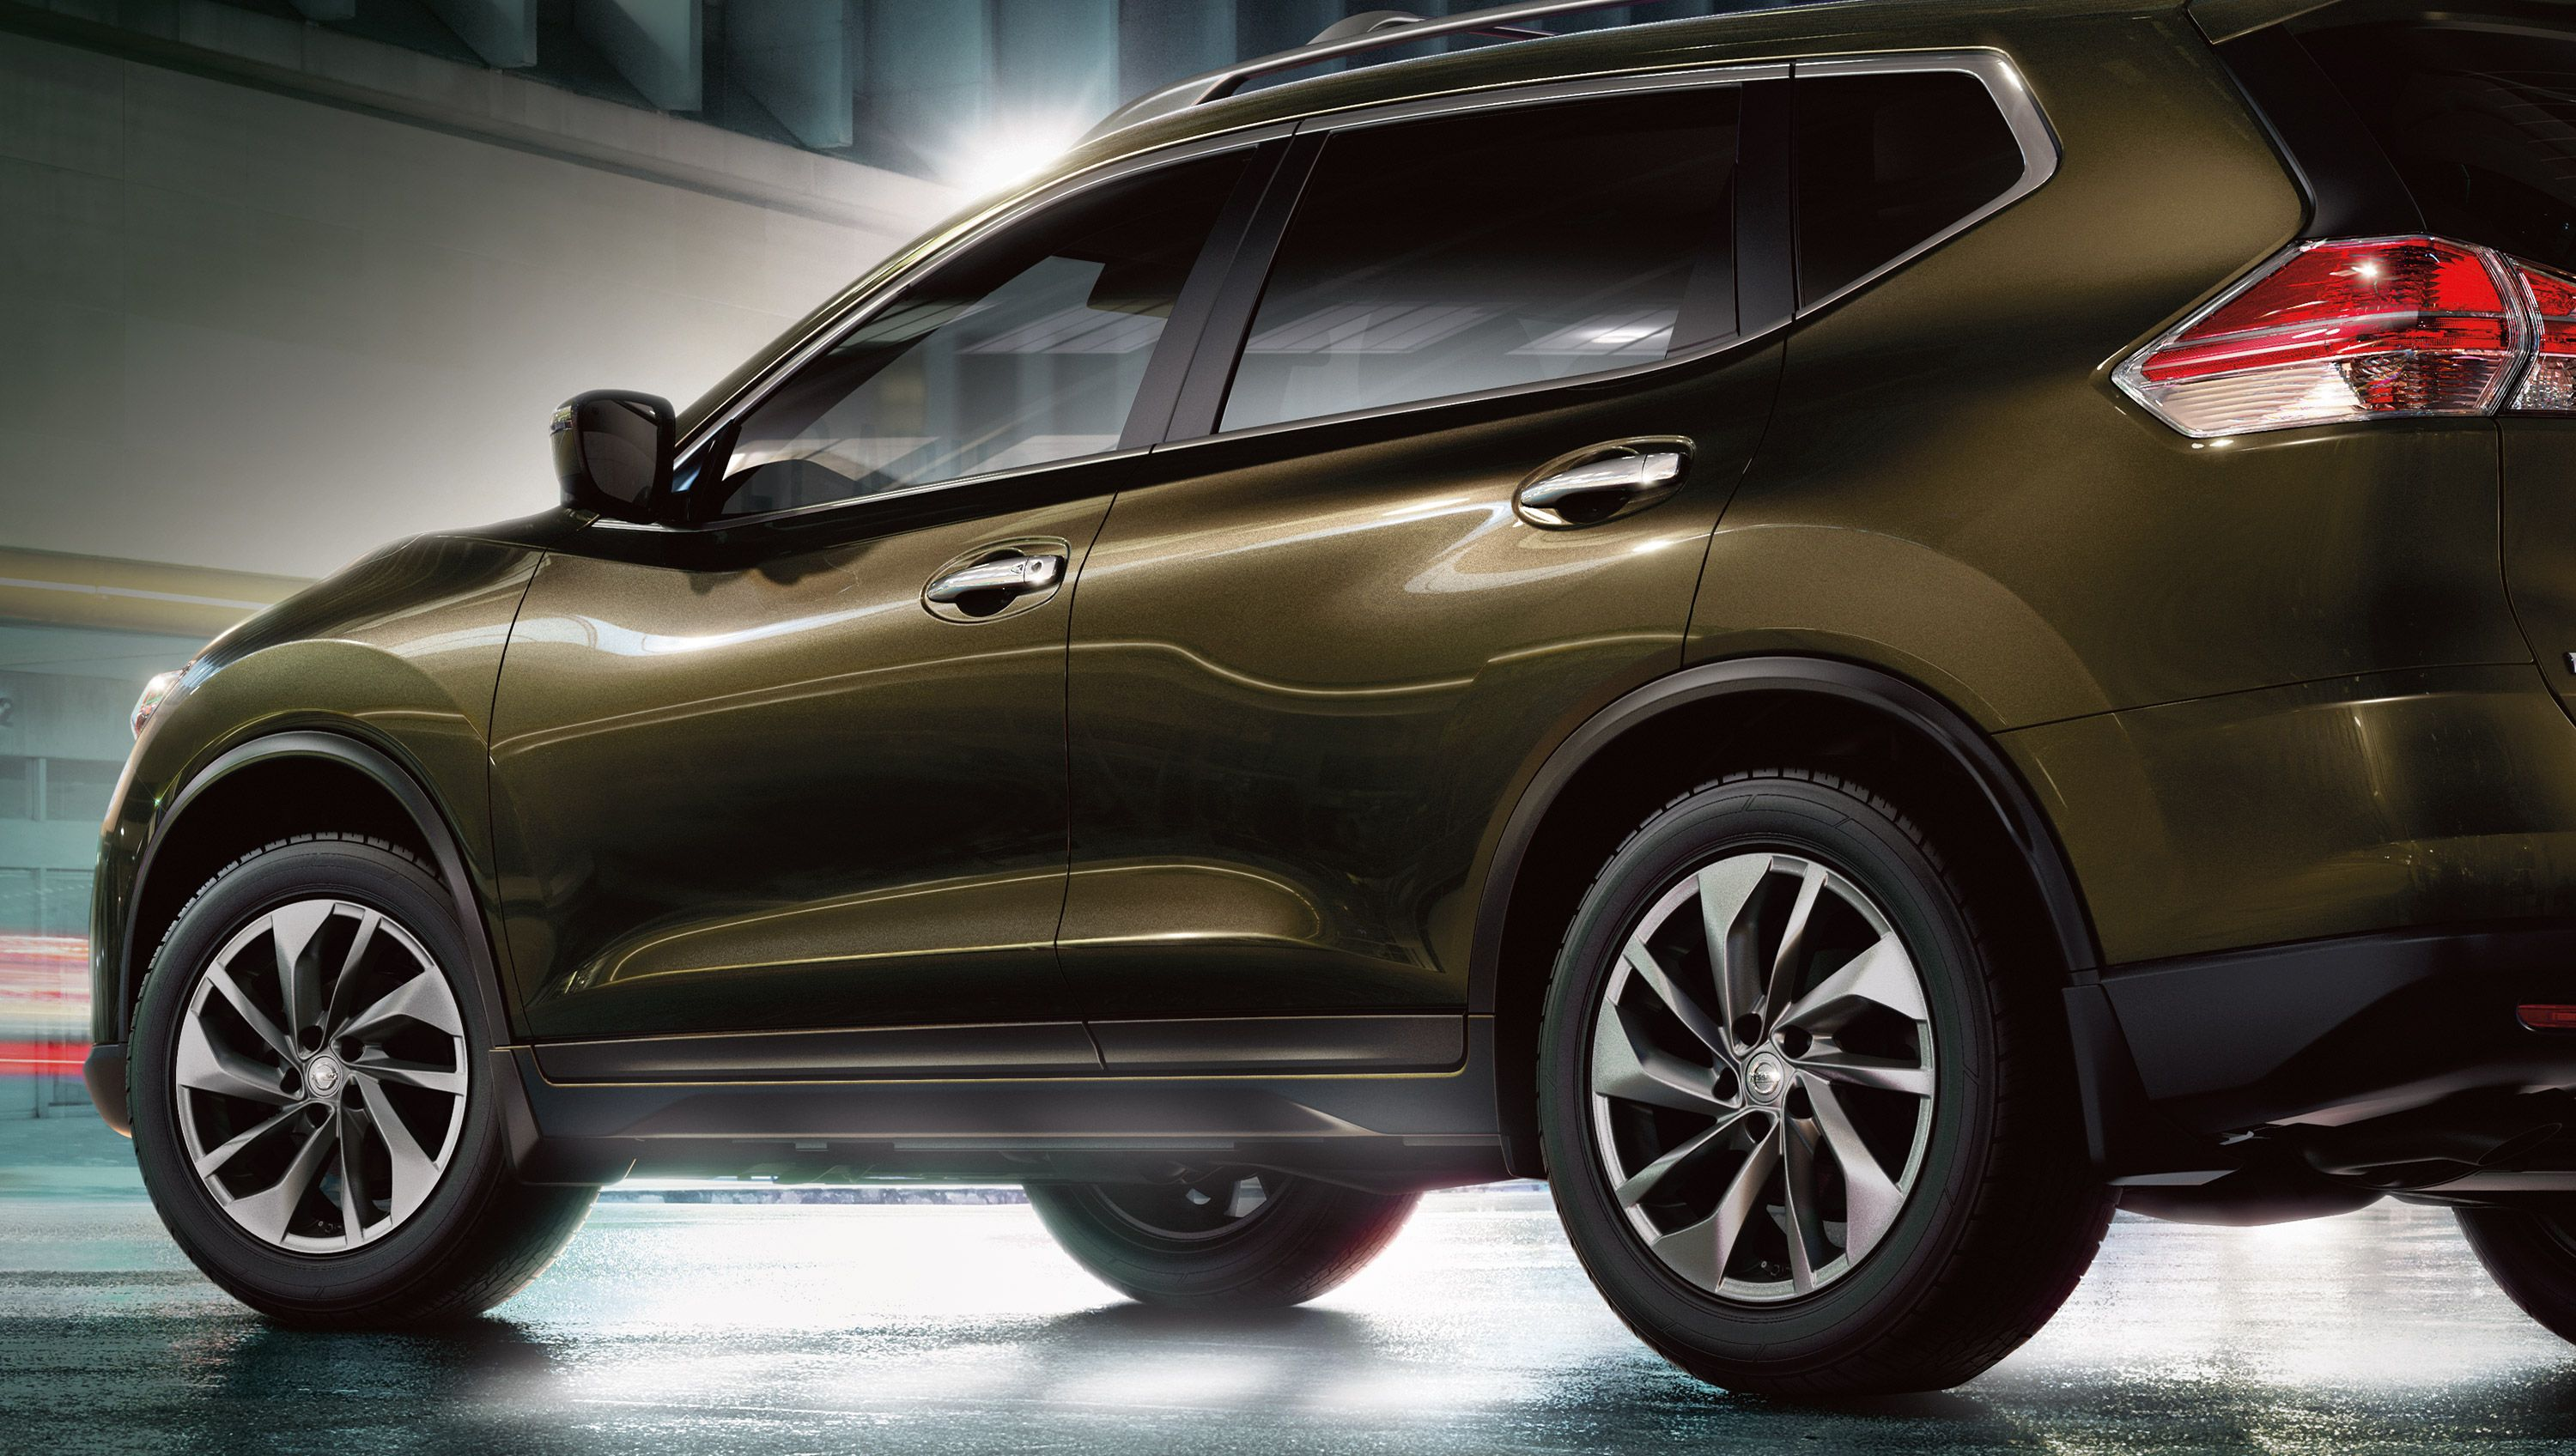 The 2016 nissan rogue has been one of nissan s greatest successes since its redesign back